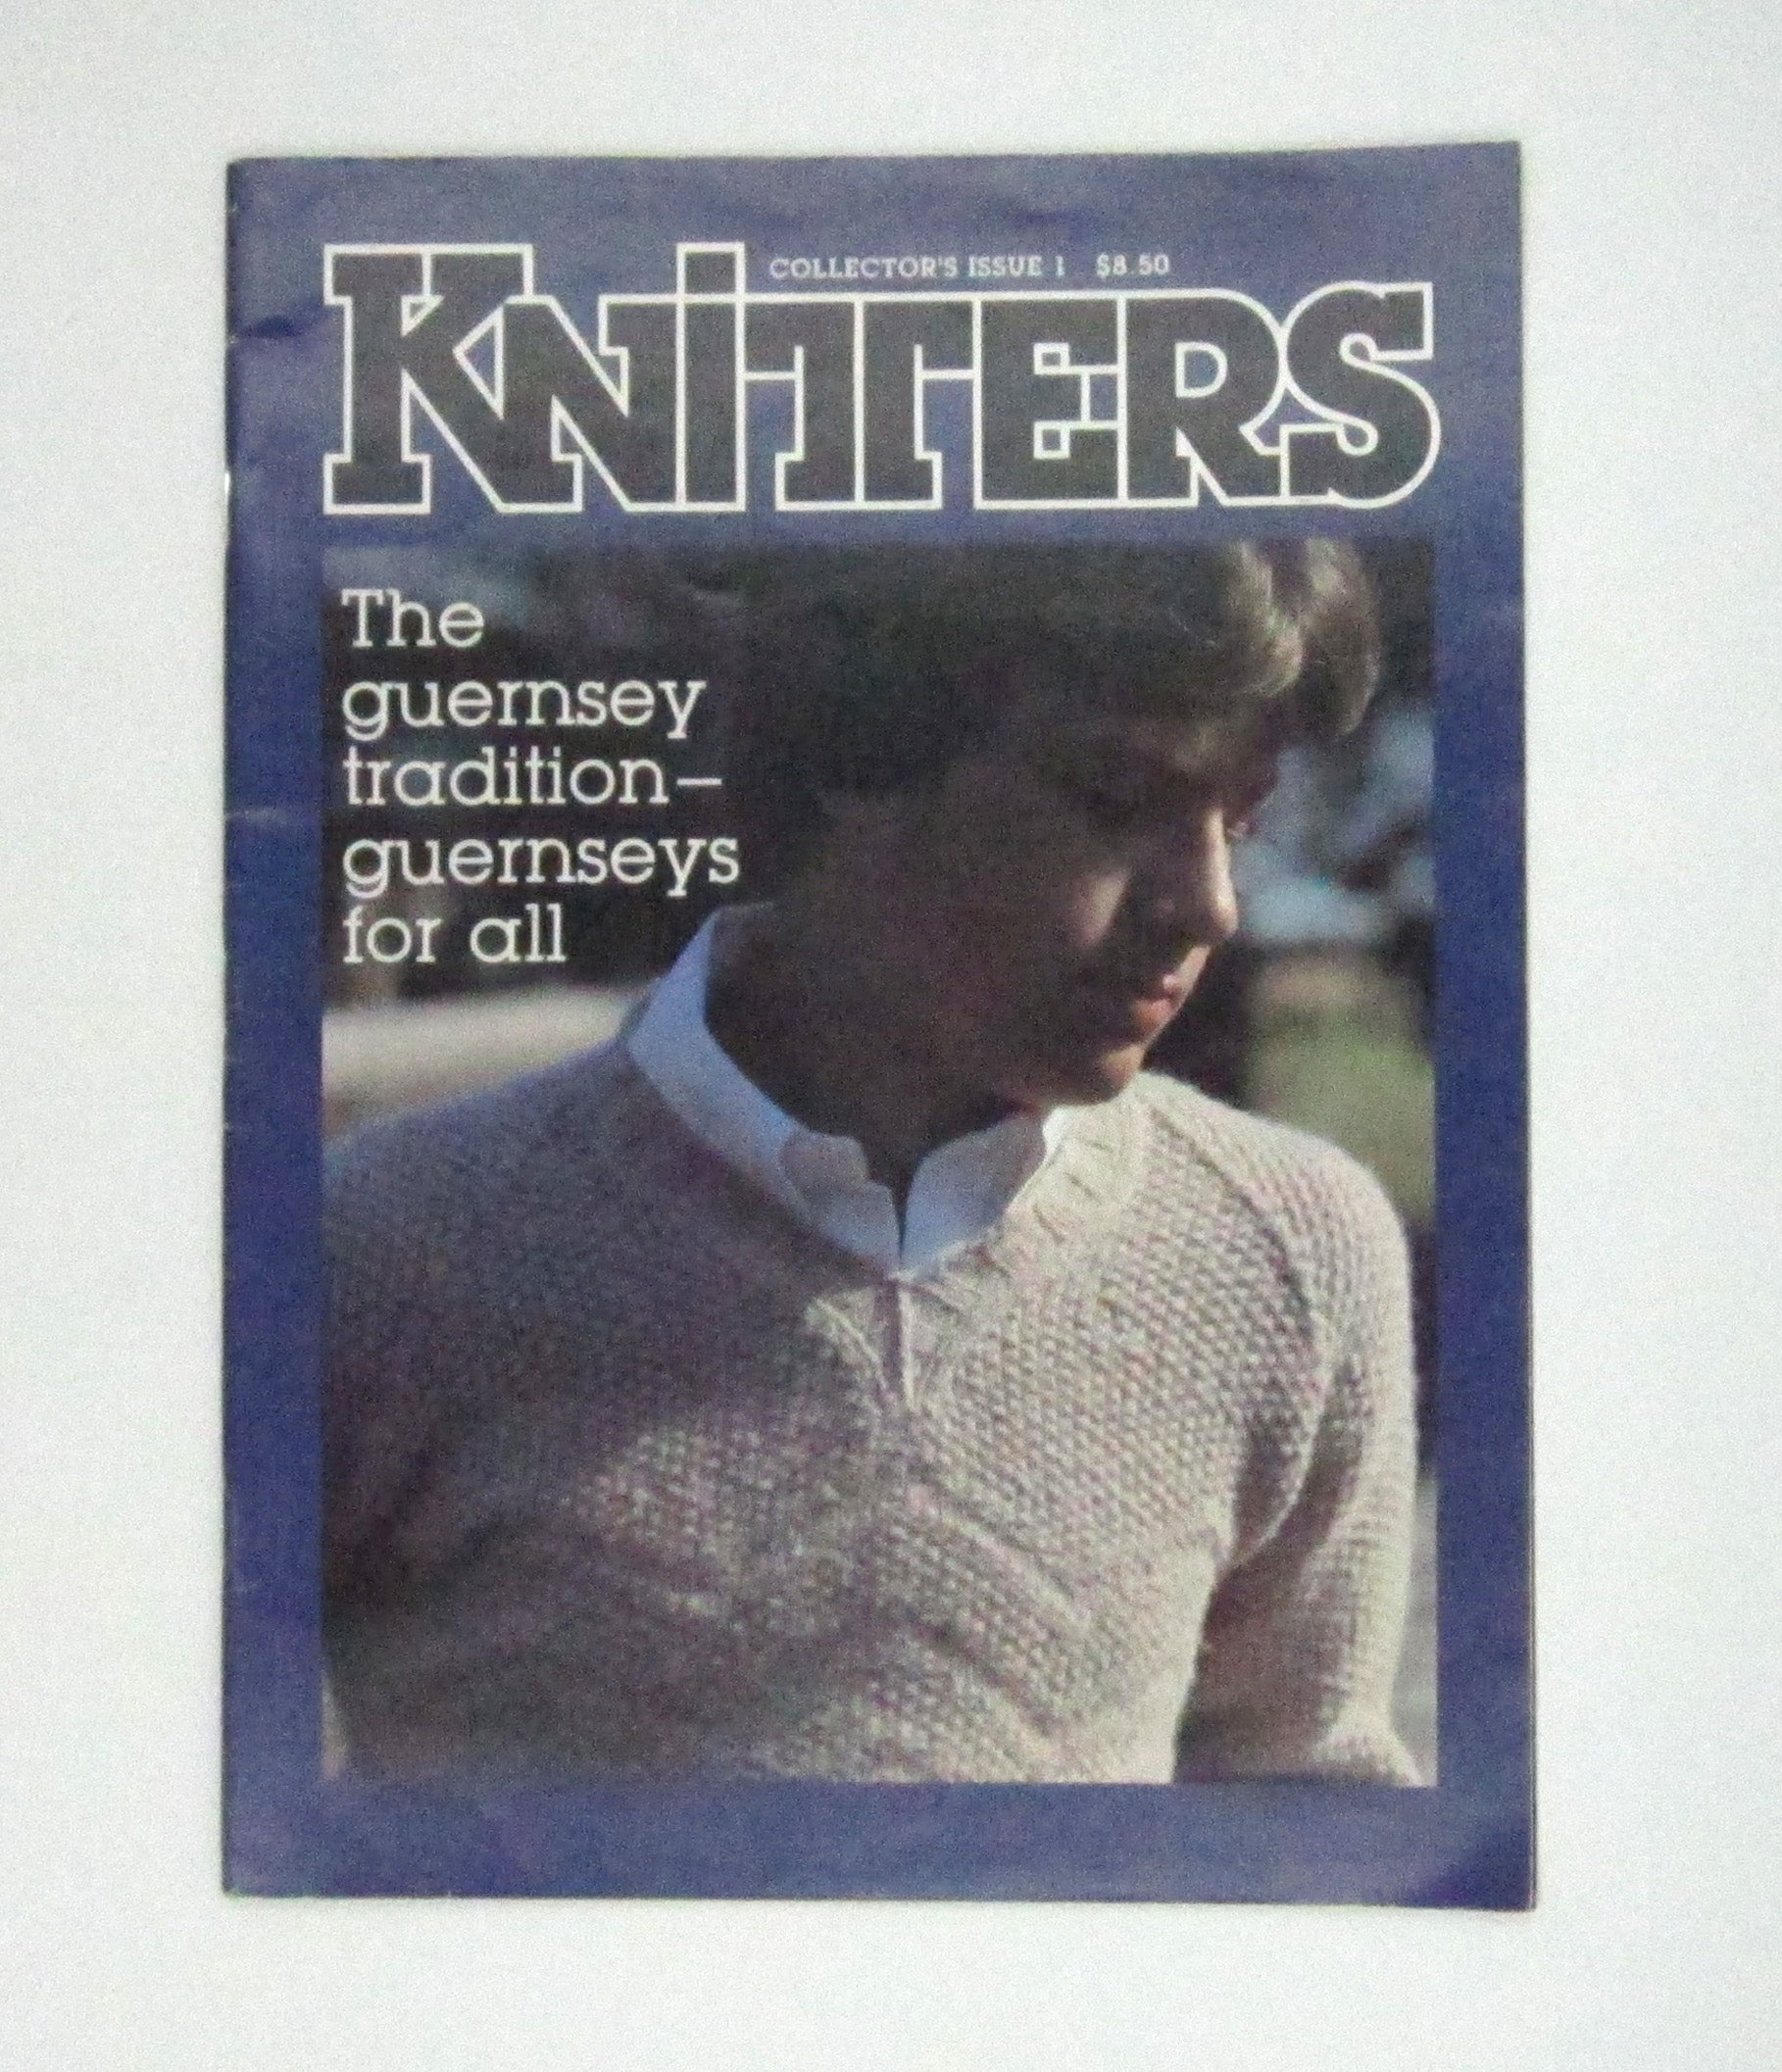 Vintage Knitters Collector's Issue 1 Knitting Magazine